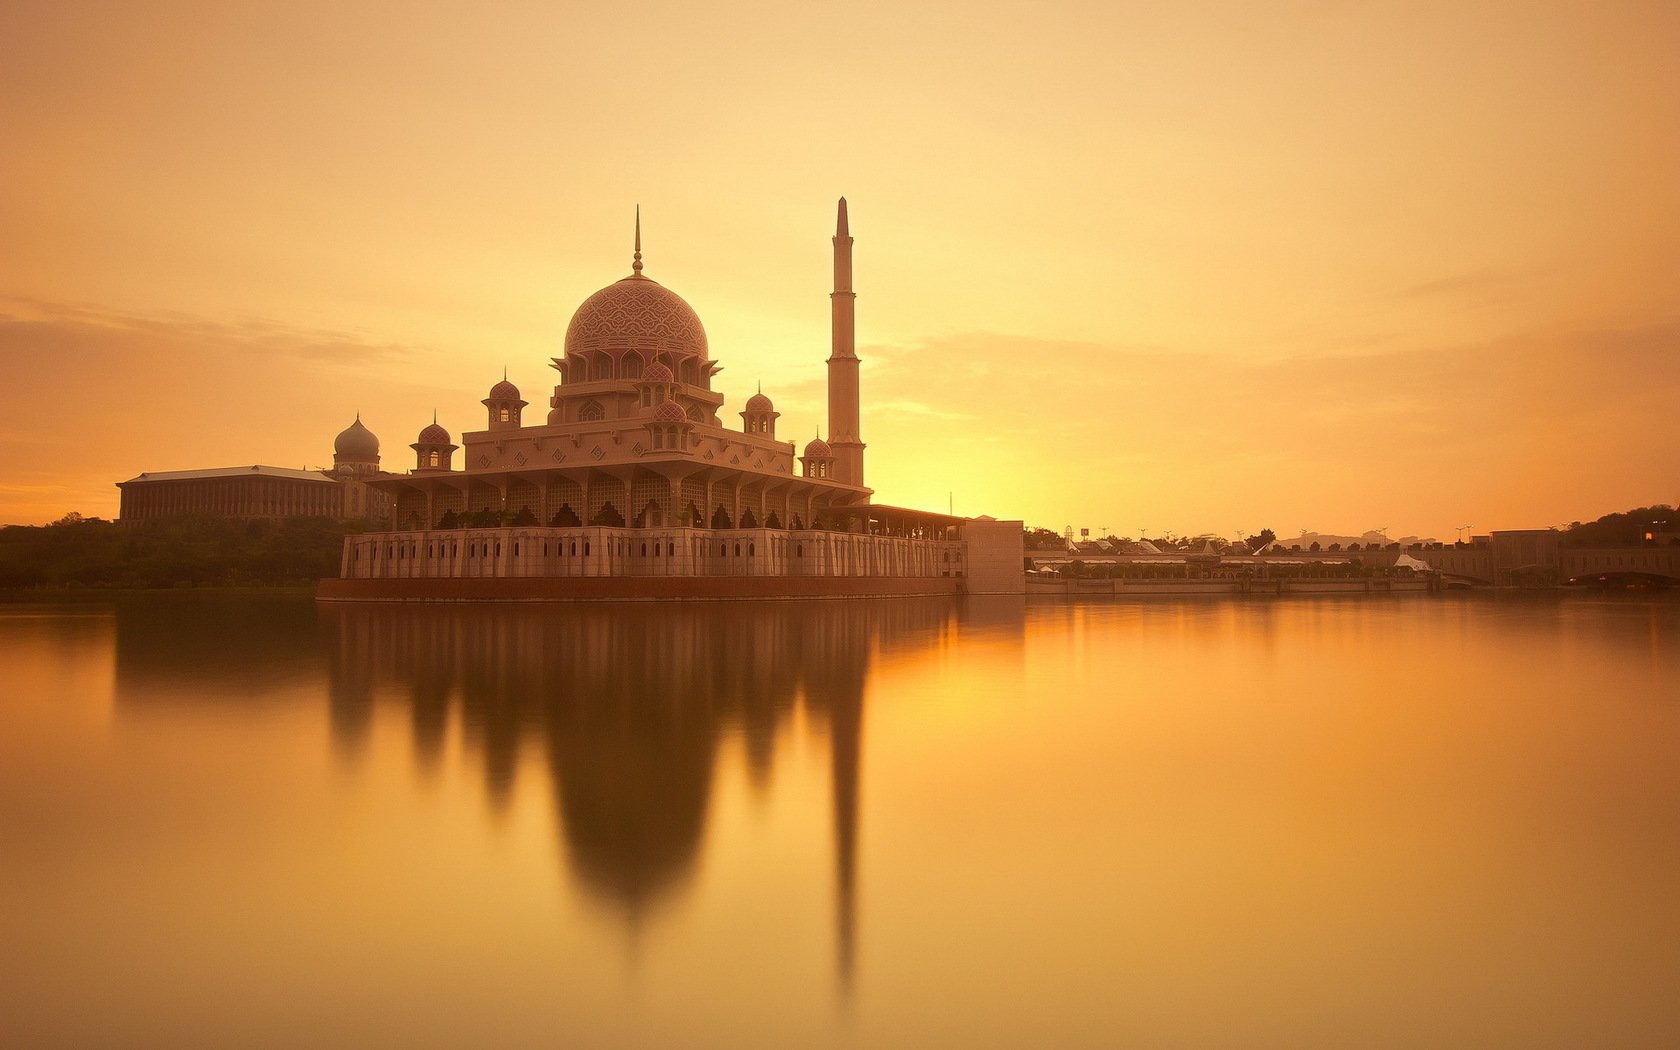 Mosque Wallpapers, Pictures, Images